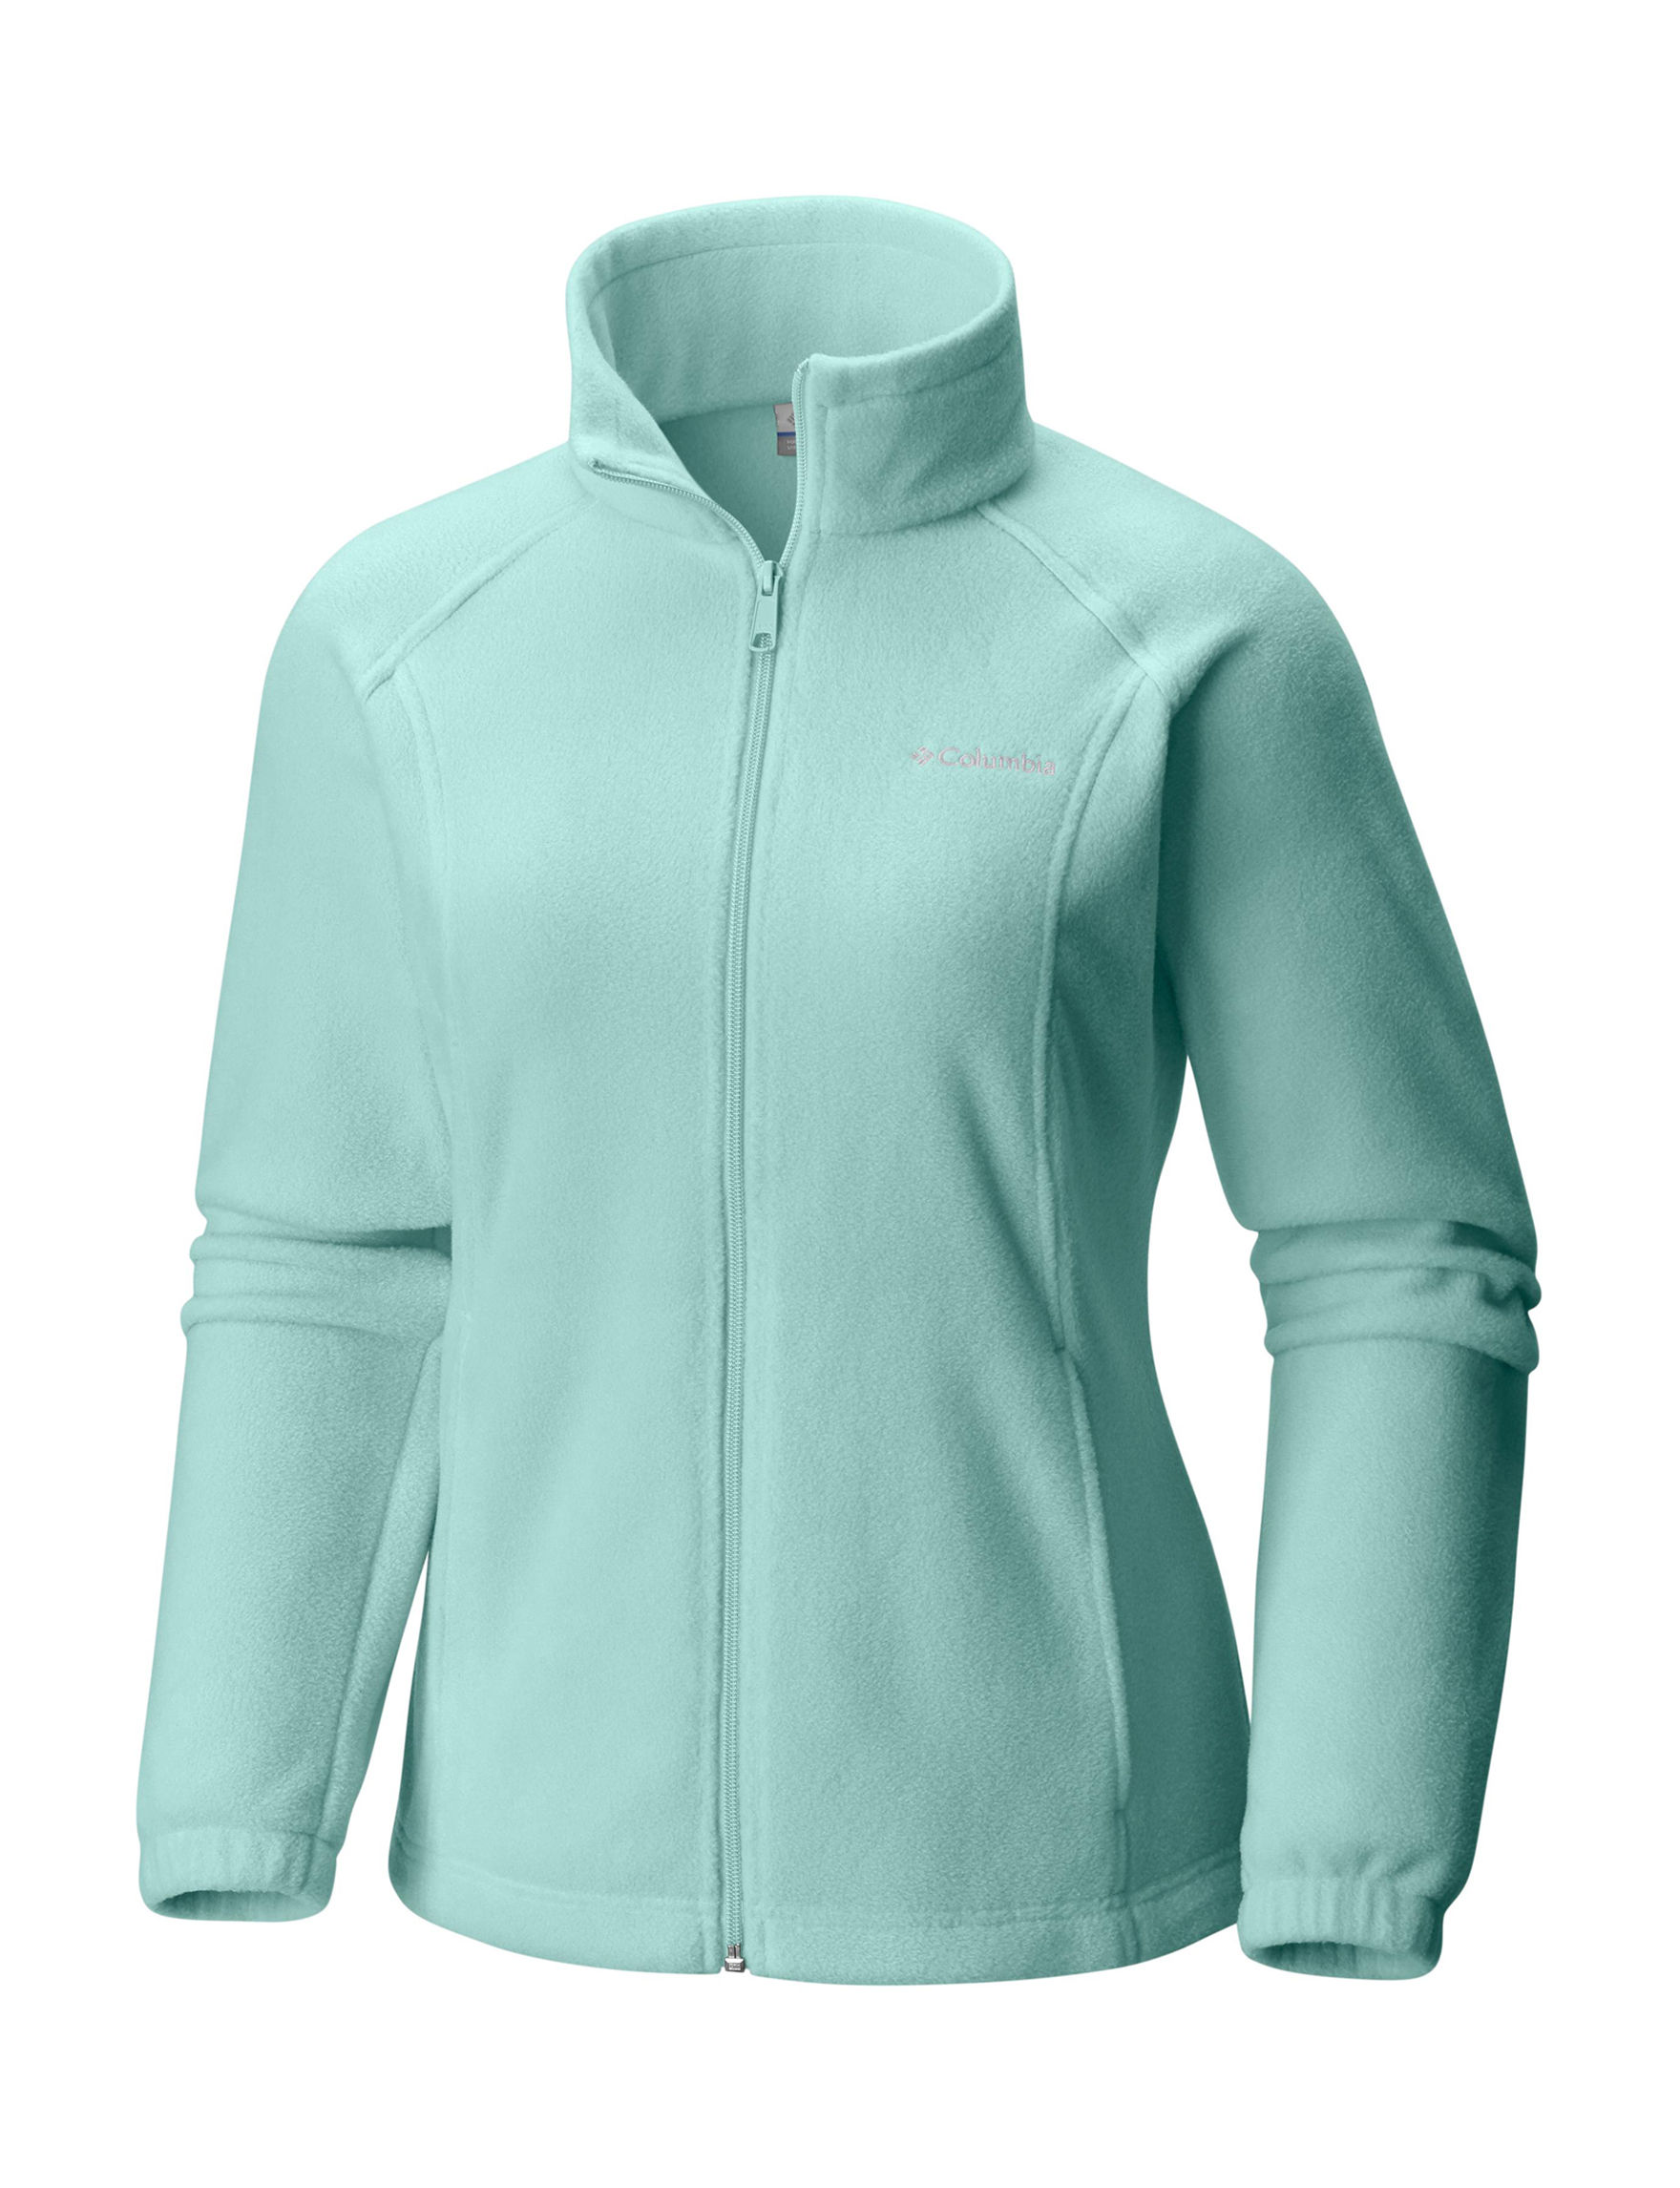 Columbia Seafoam Fleece & Soft Shell Jackets